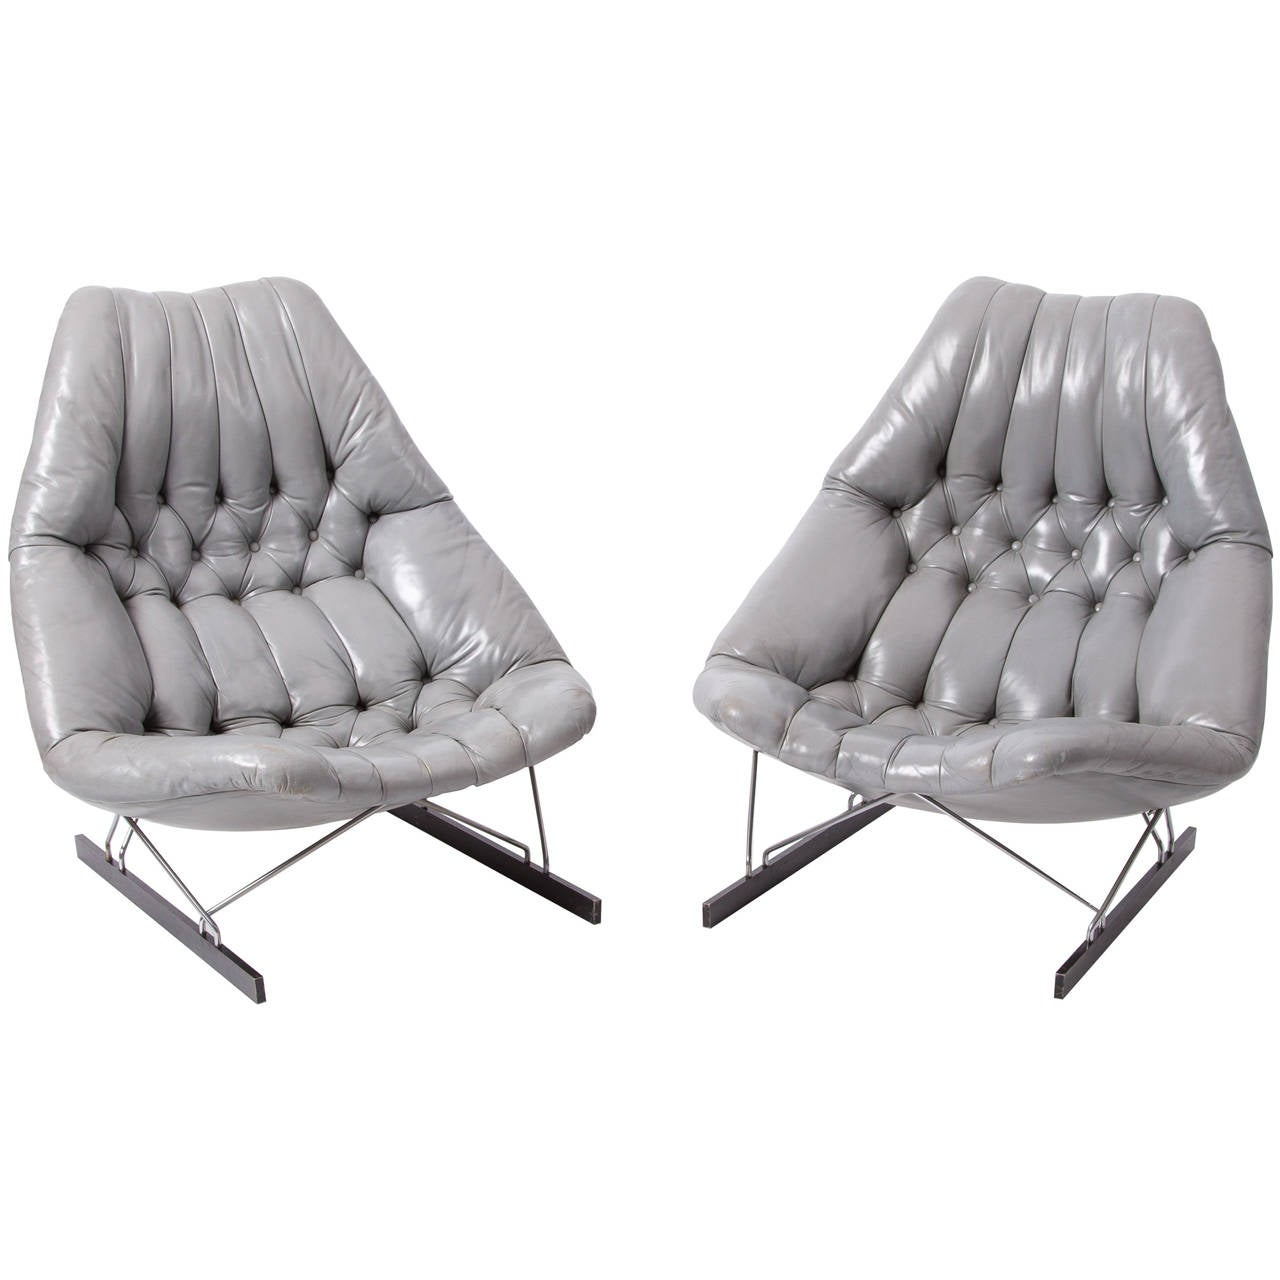 Set Of Artifort Chairs Designed By Geoffrey Harcourt In